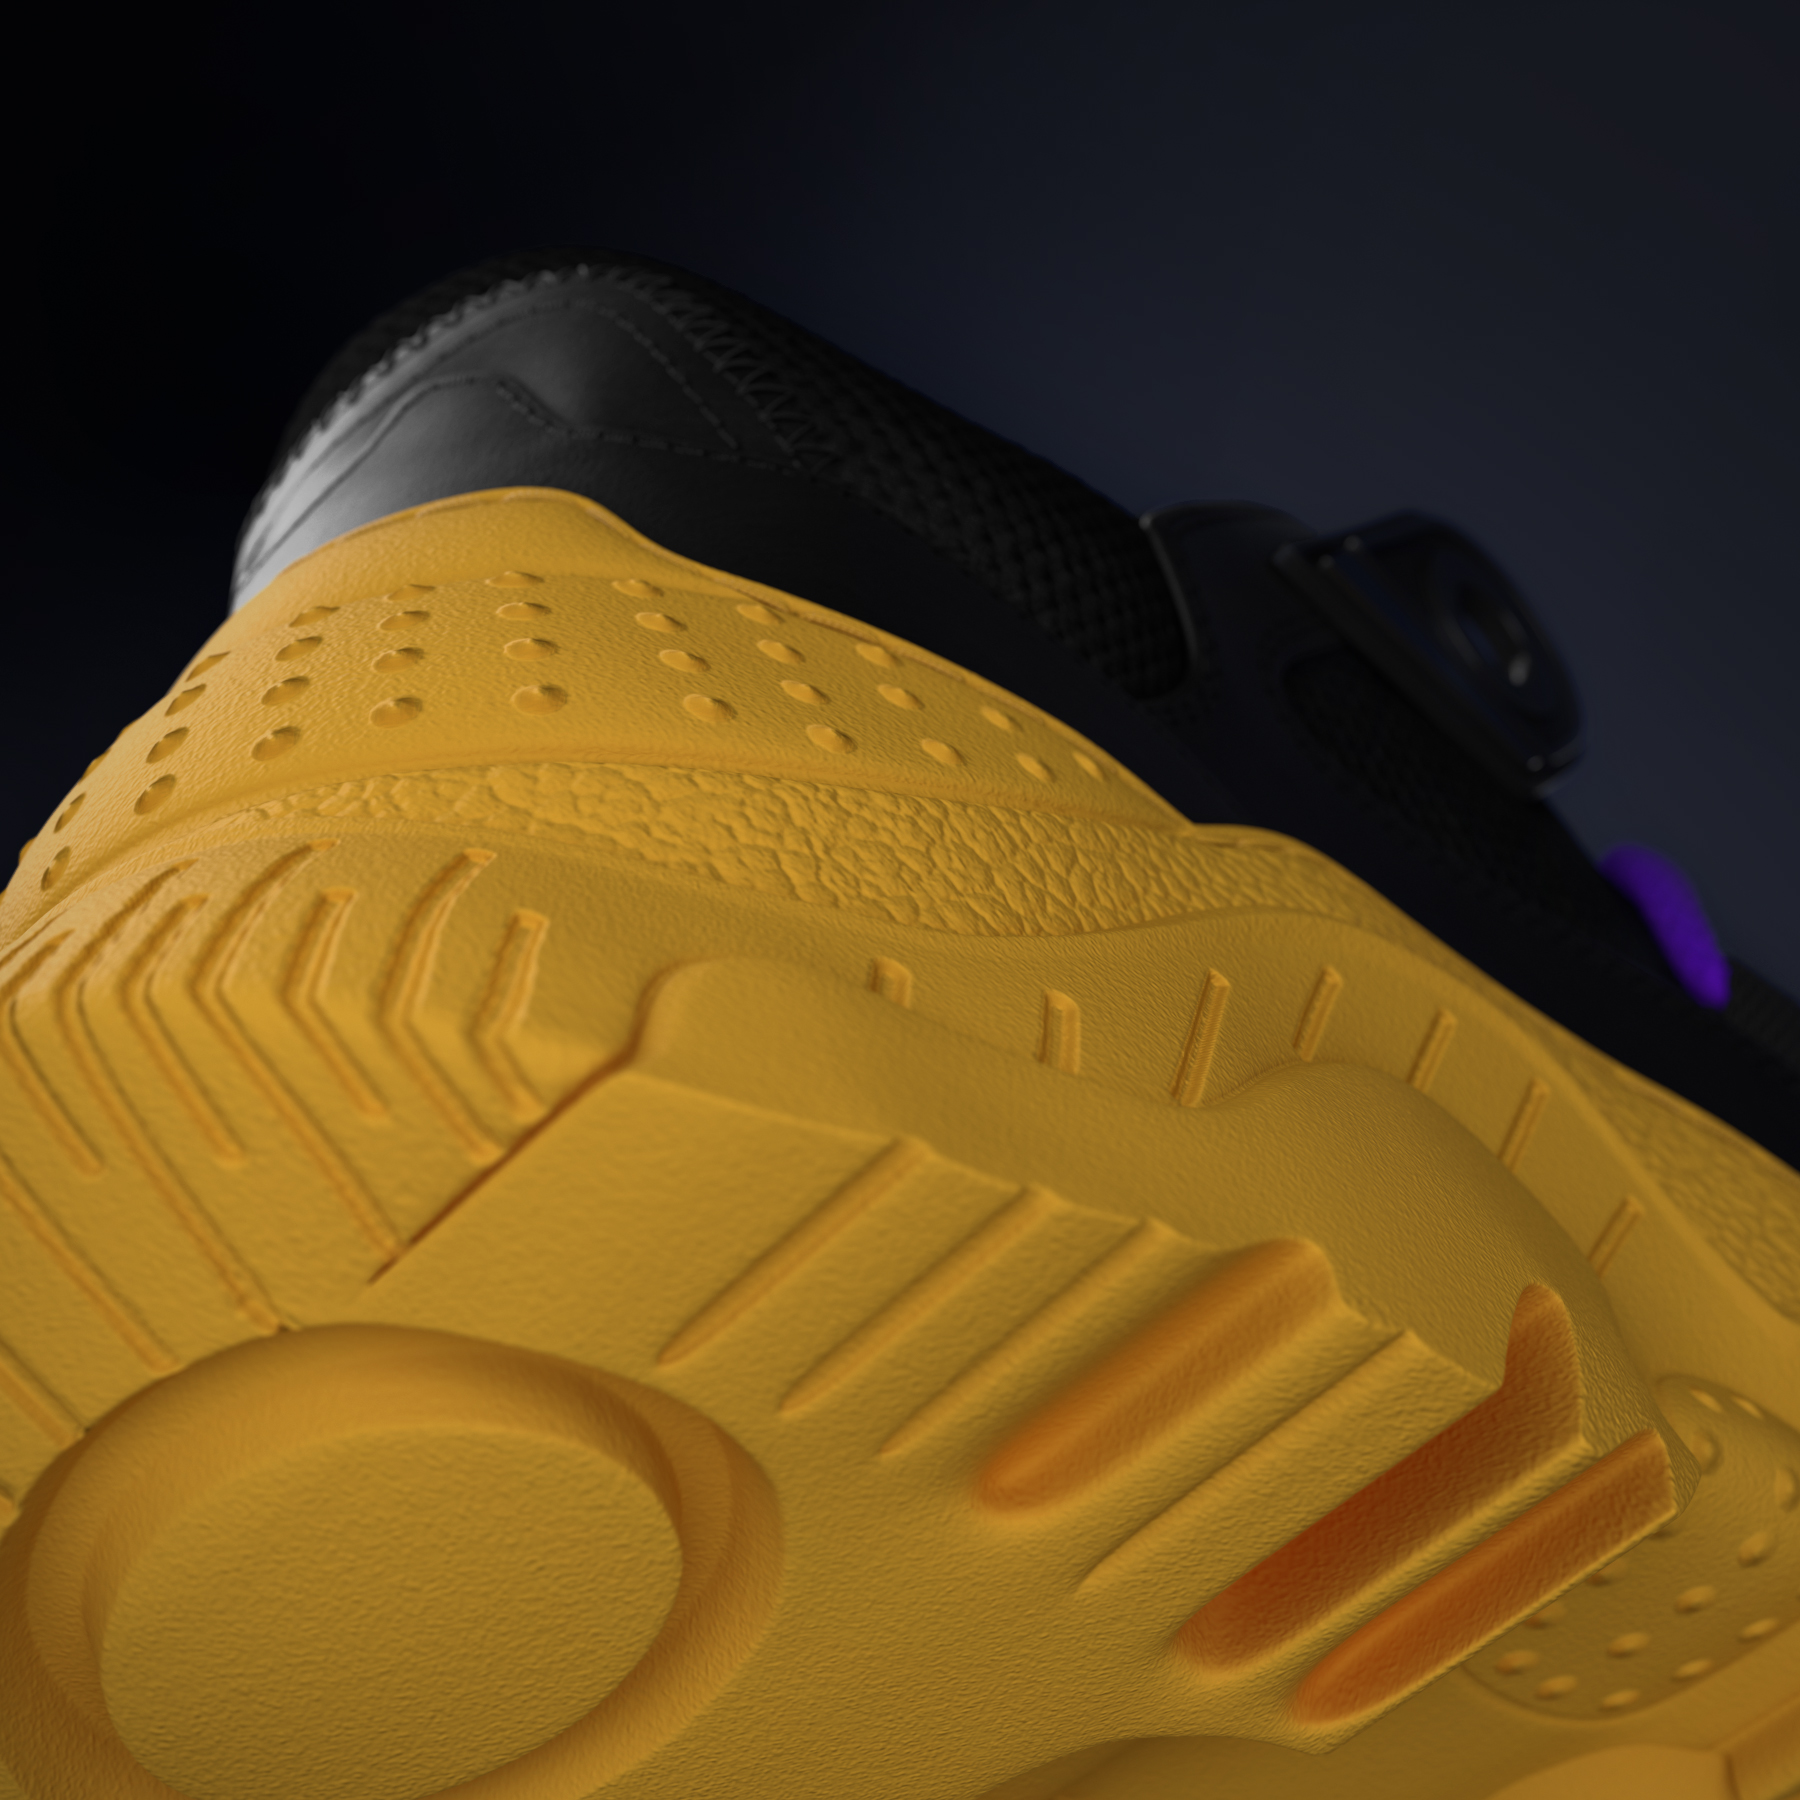 Sneaker's sole detail, down view.